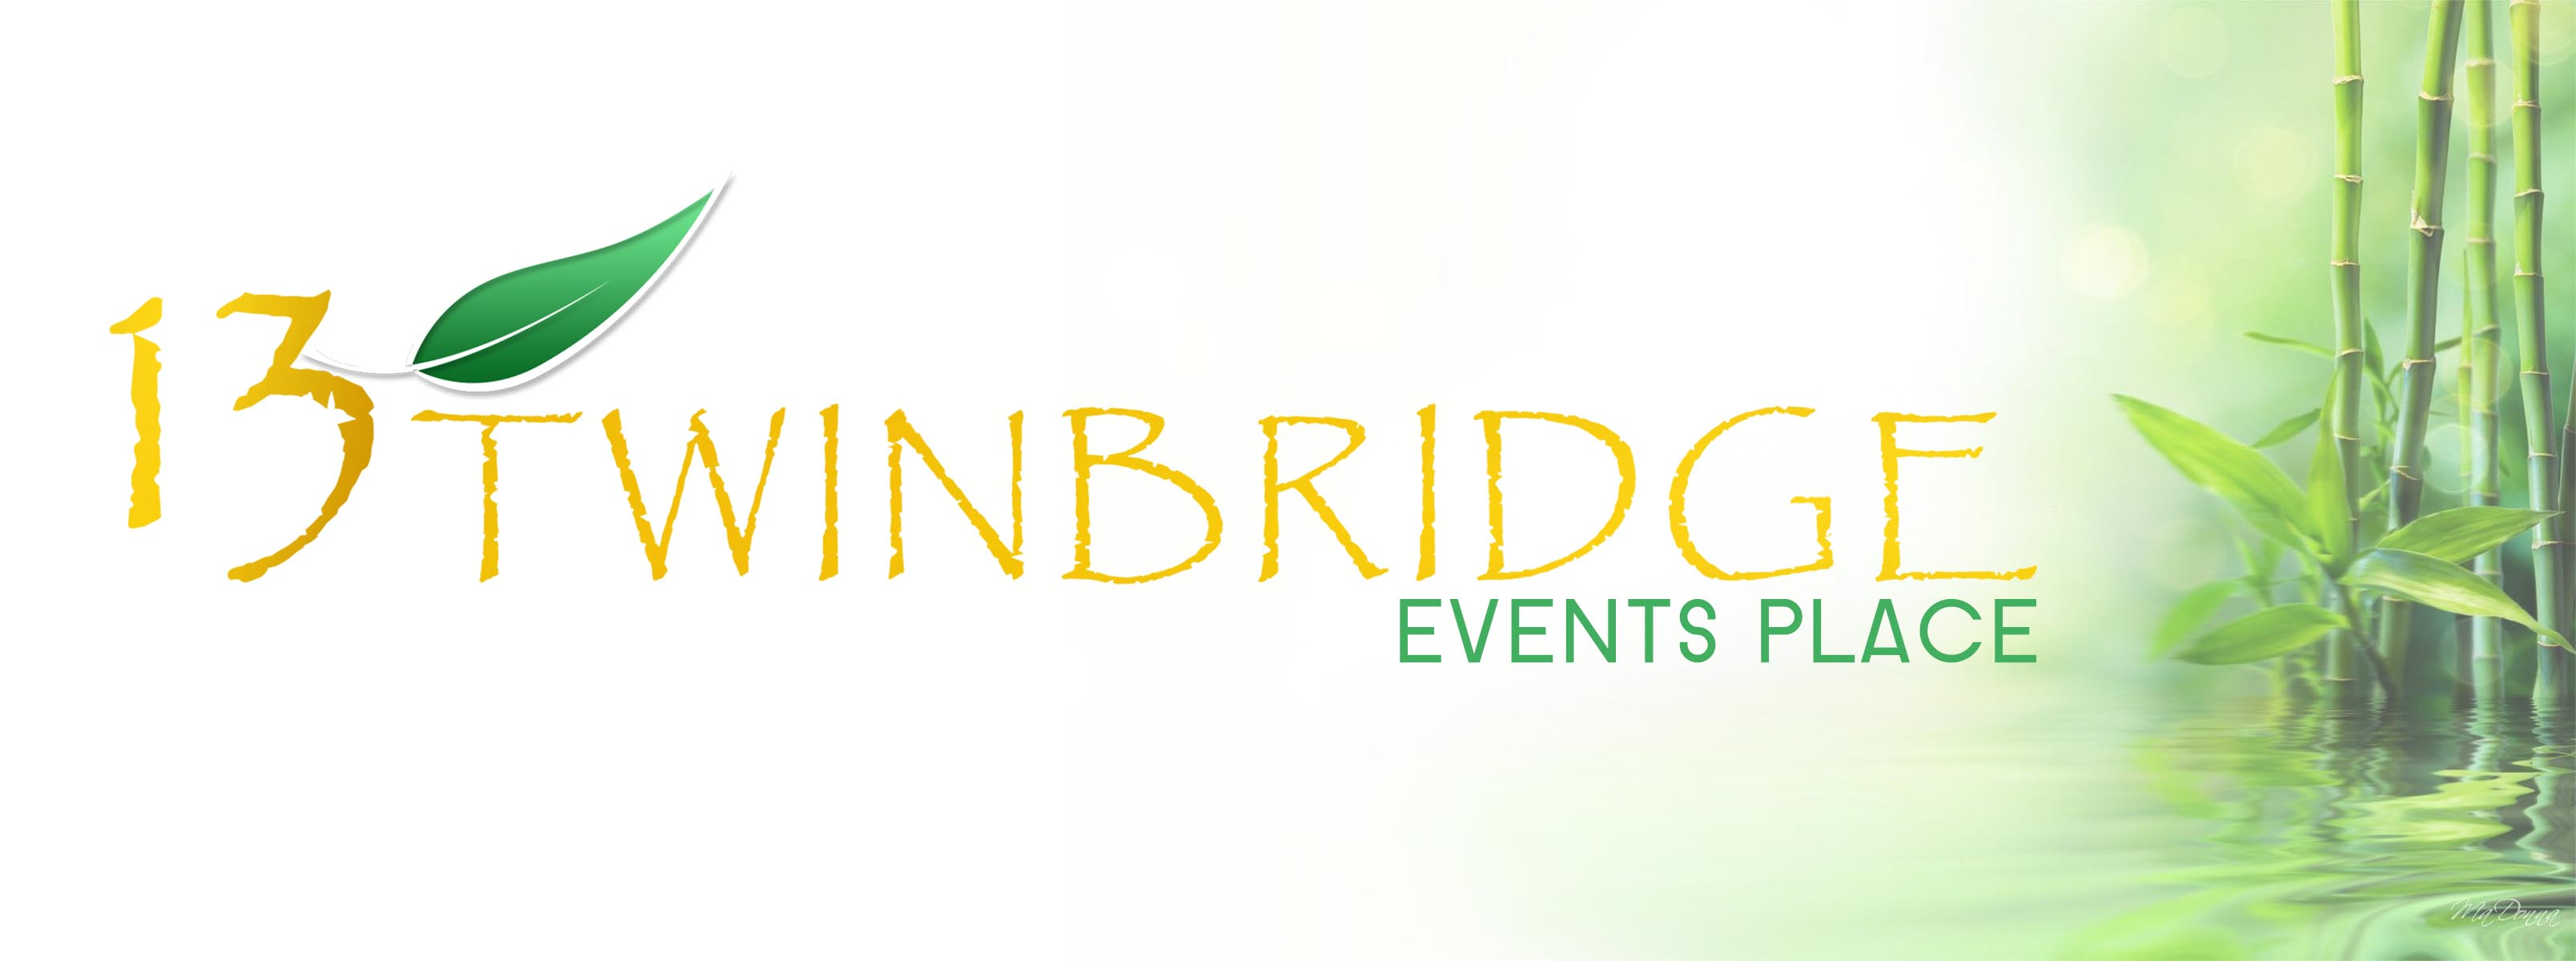 13 Twinbridge Events Place